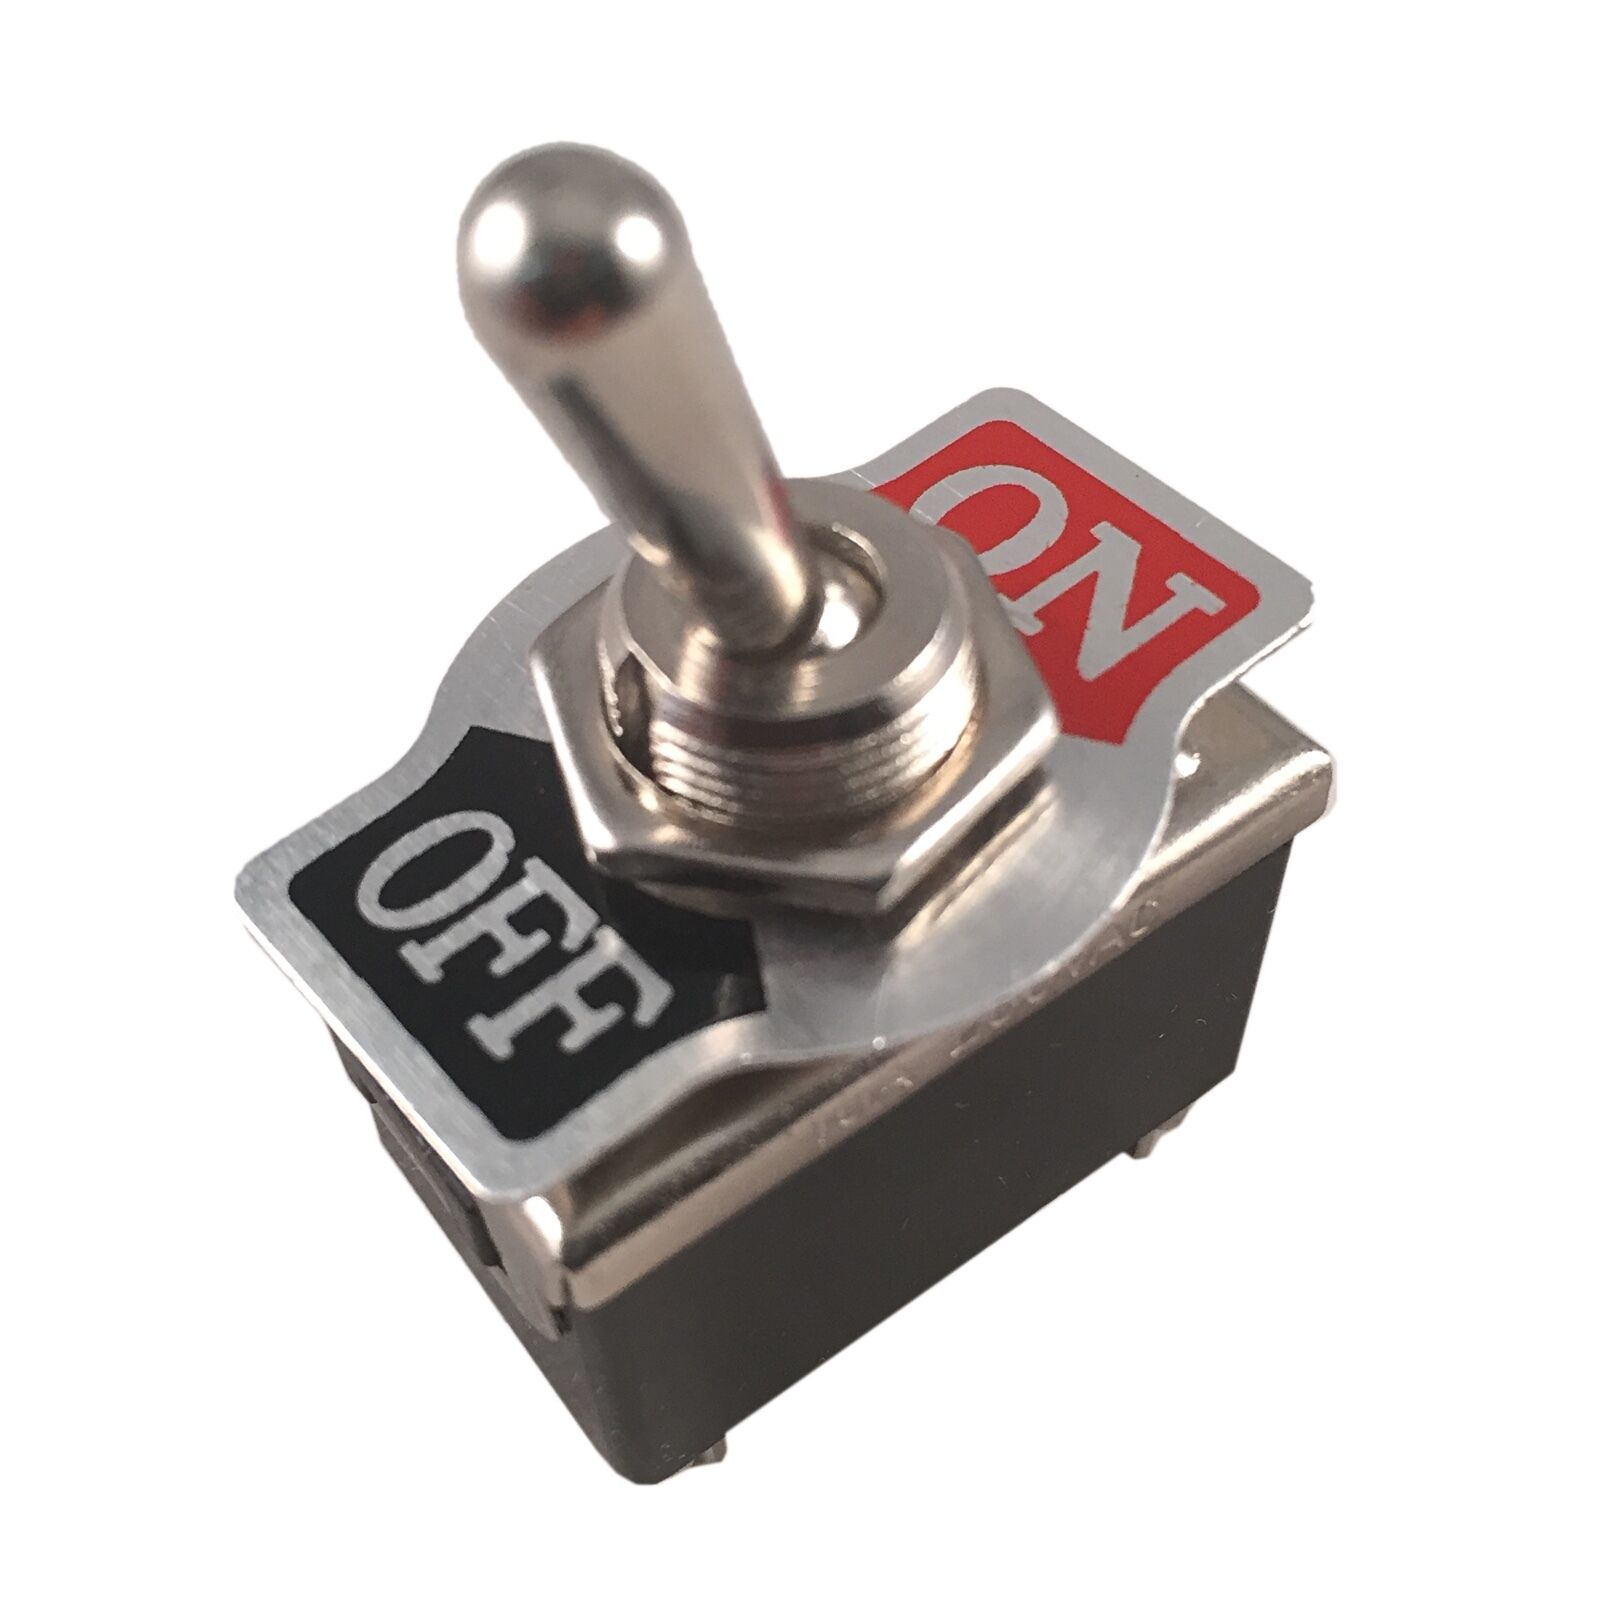 Metal Rocker Toggle Switch Heavy Duty 4 Pin Dpst On Off 2 Position Dash Car 1 Of 7free Shipping